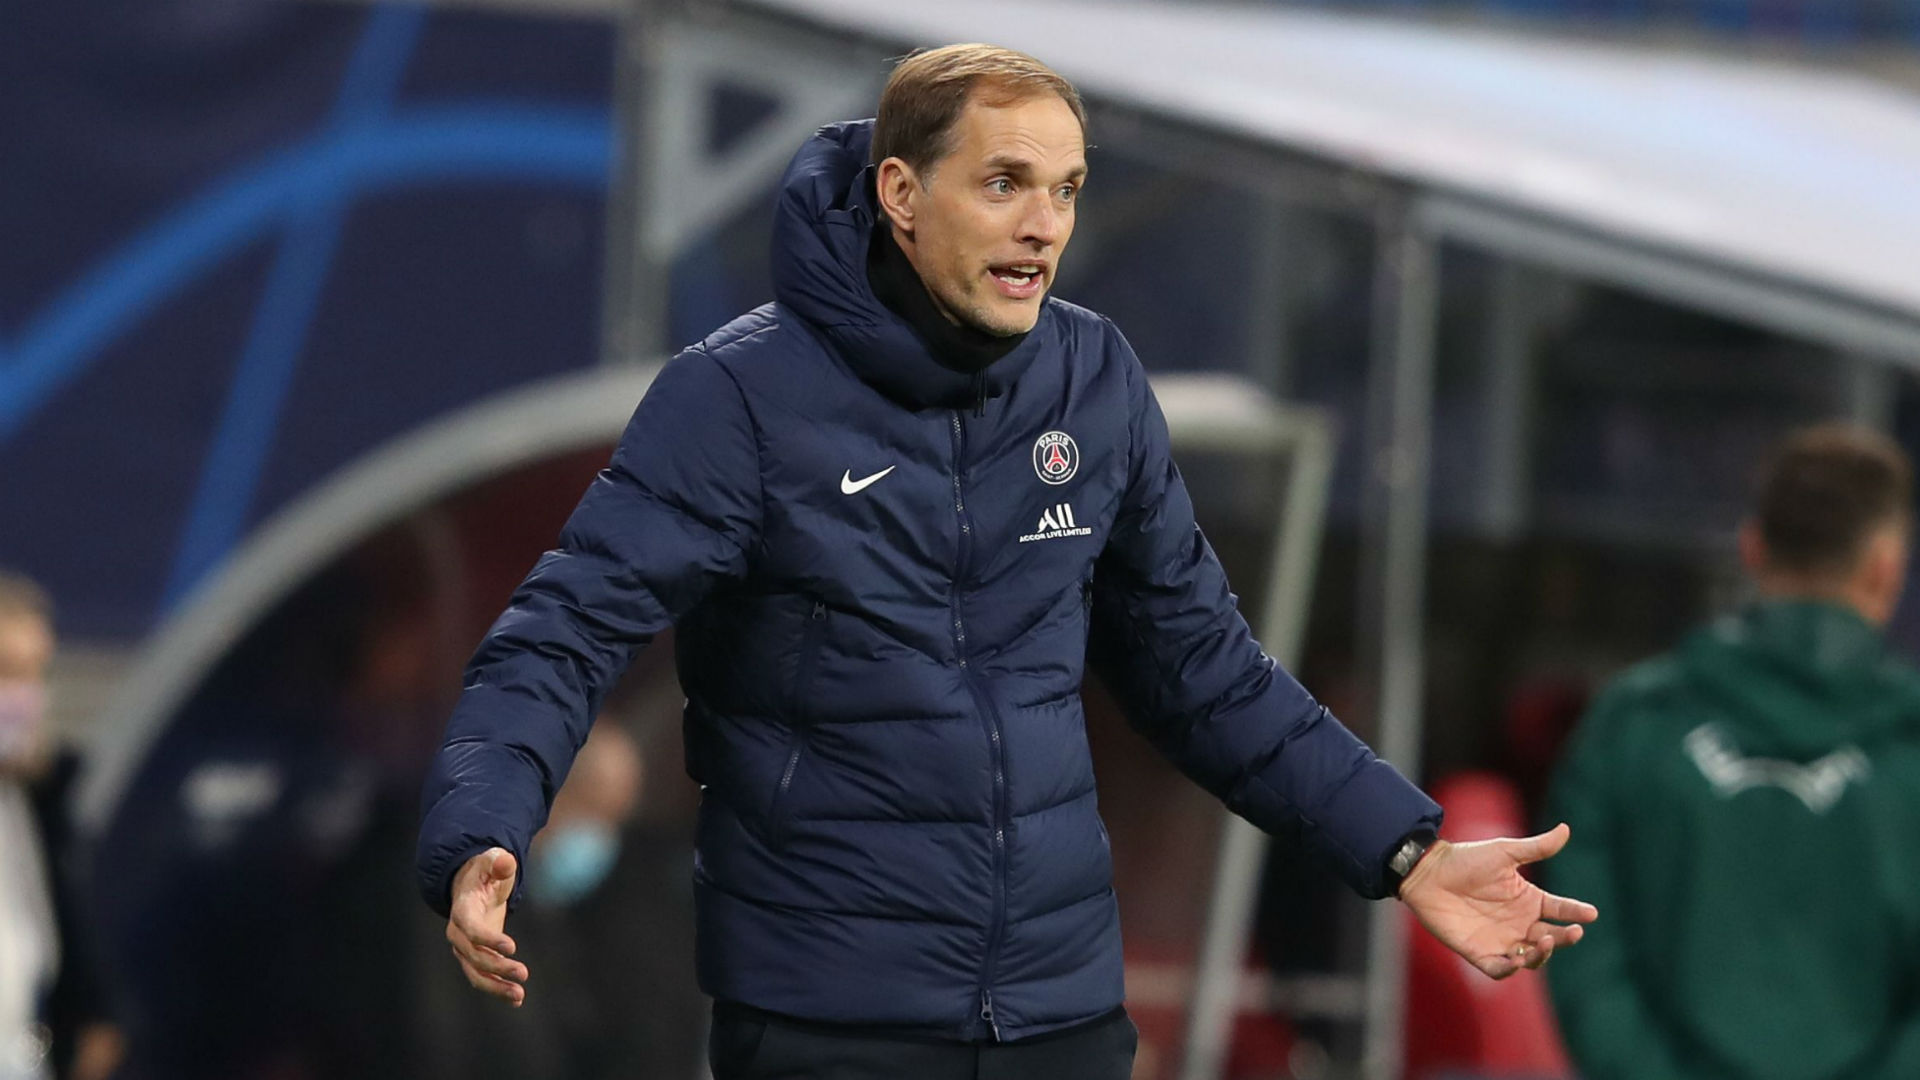 Schedule will 'kill the players' – Tuchel hits out after PSG injury list lengthens